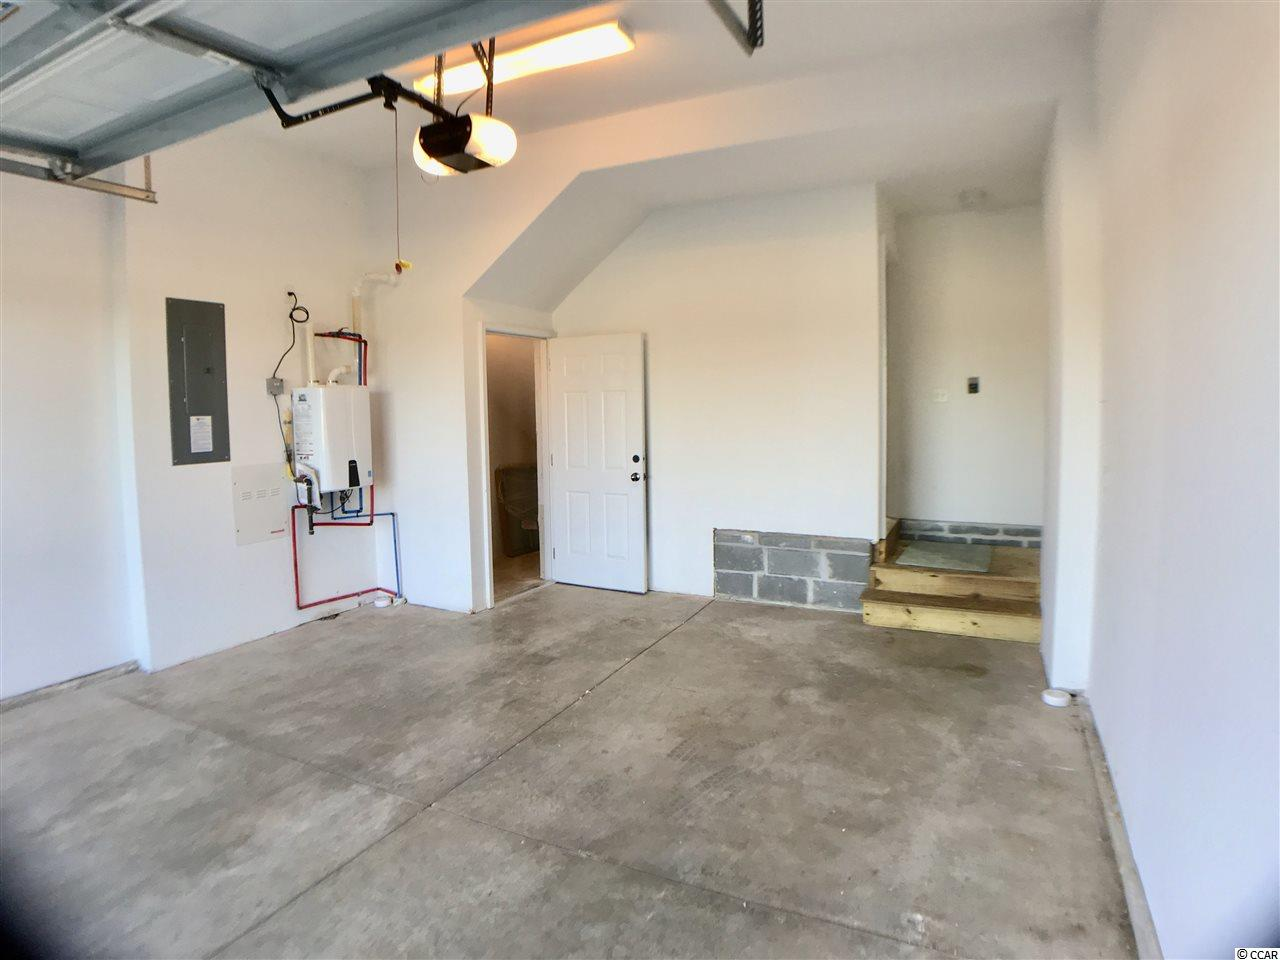 2 bedroom condo for sale at $315,000